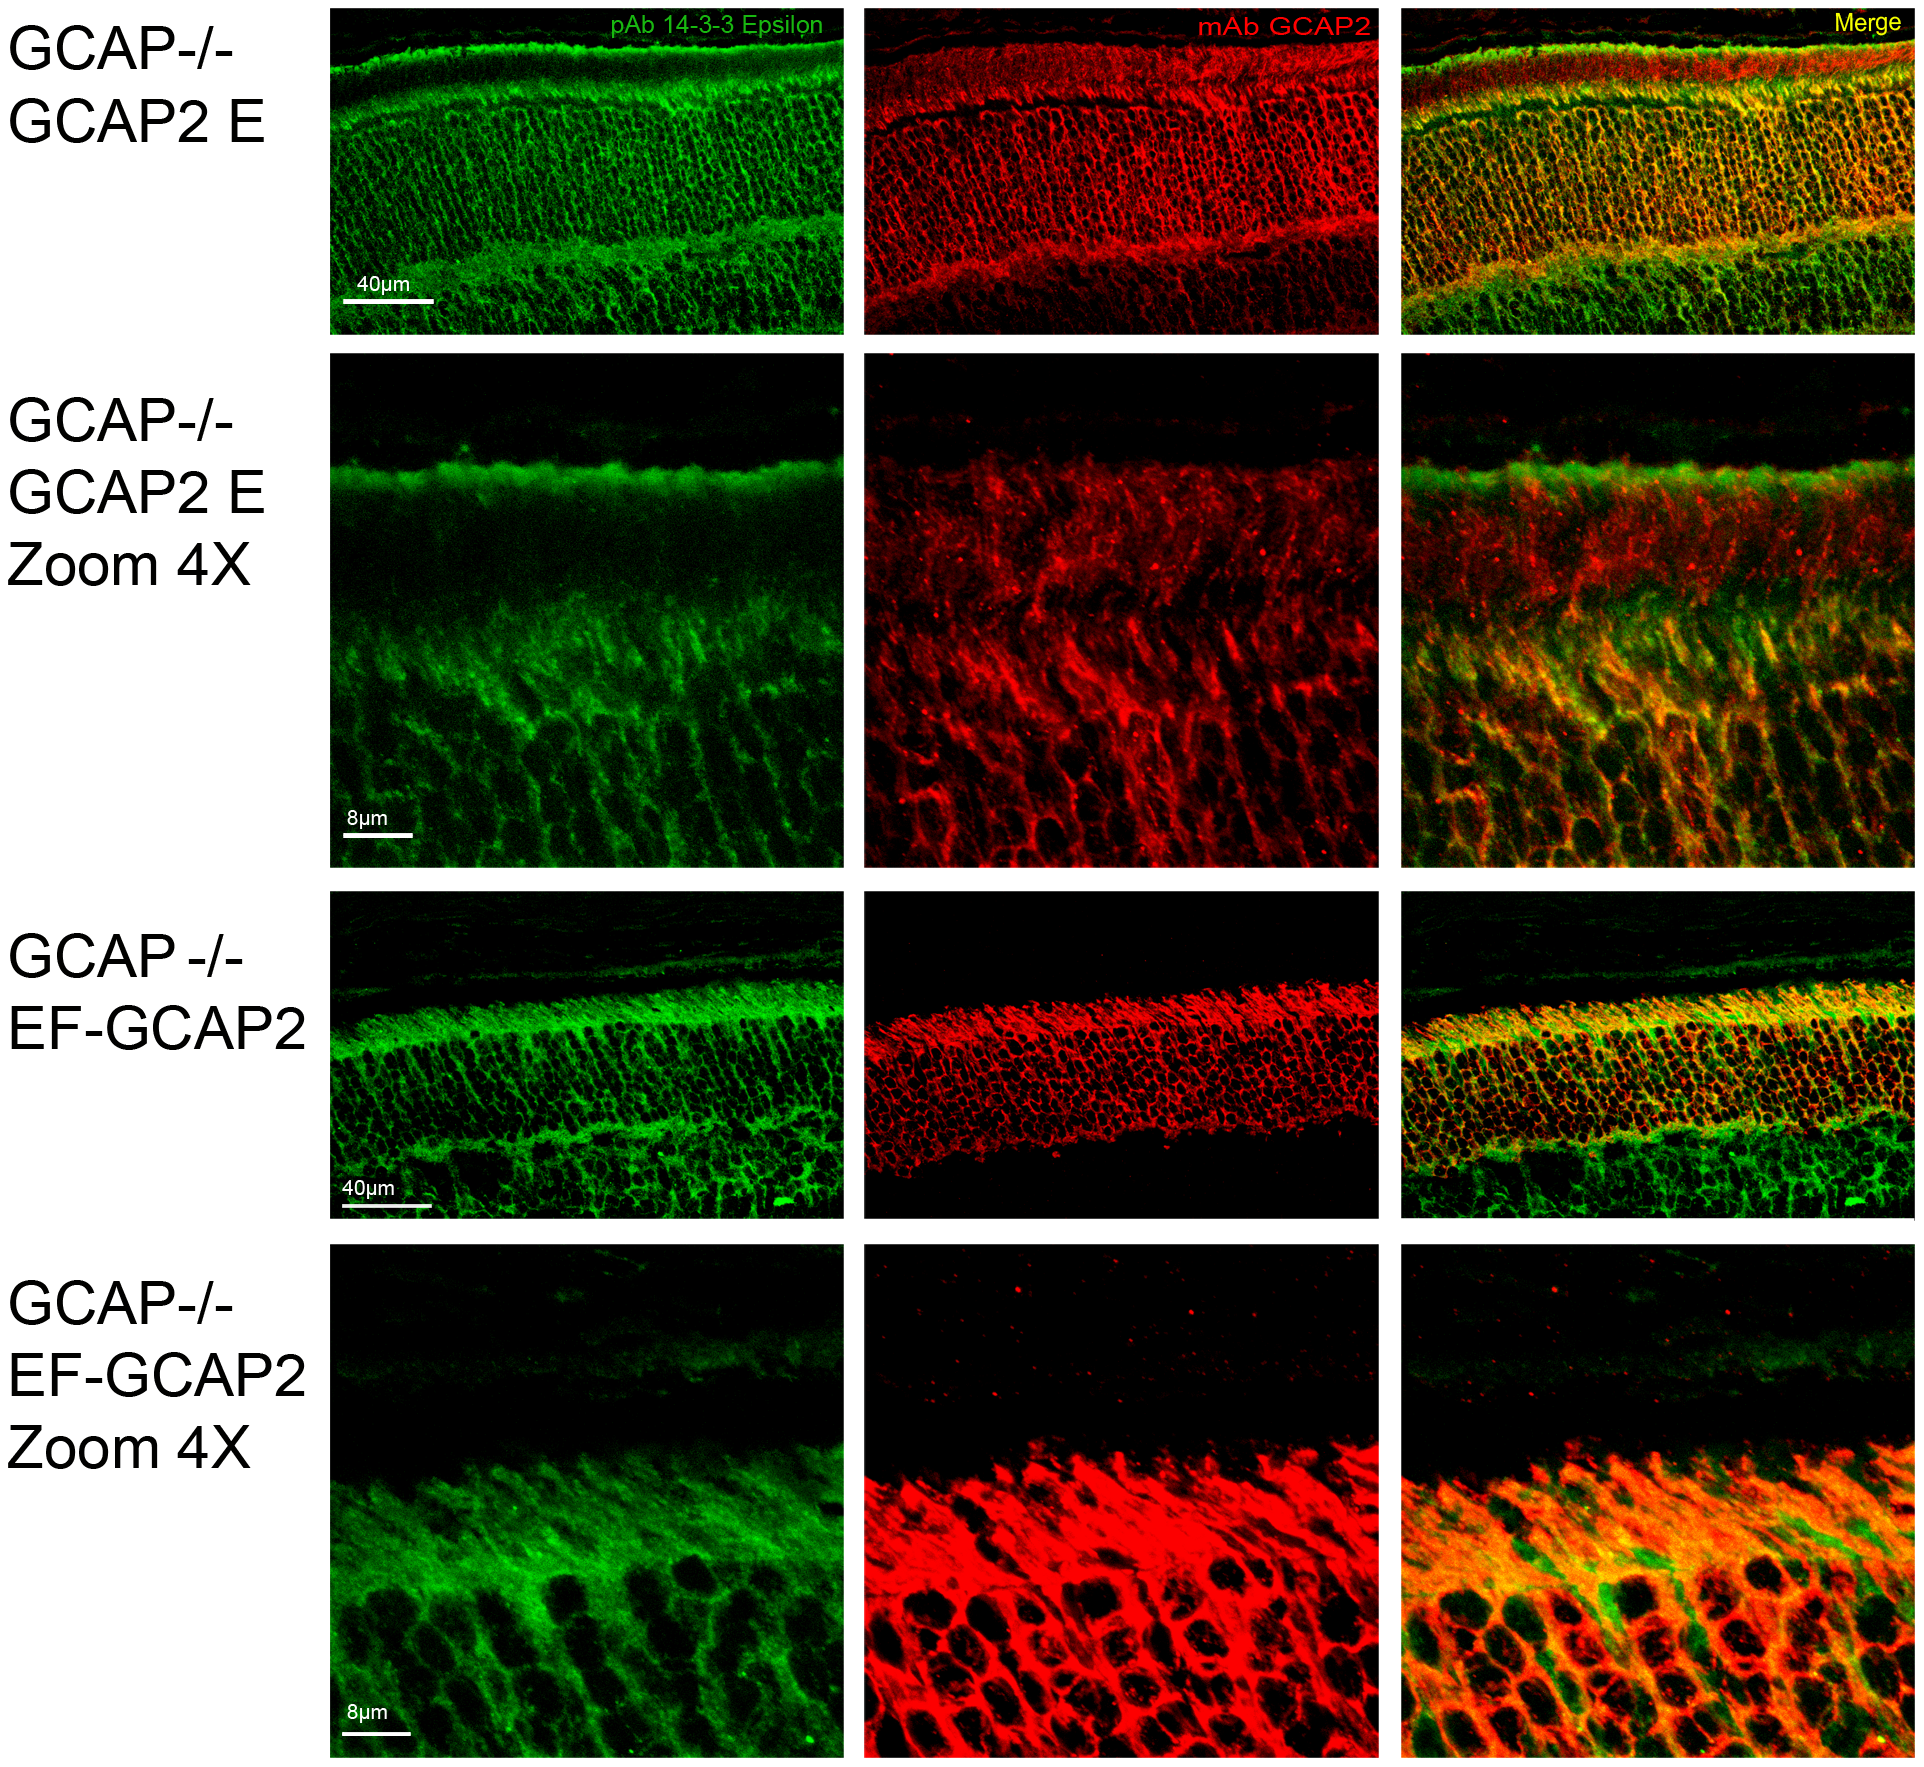 Coimmunolocalization of 14-3-3ε with GCAP2 in retinas from GCAPs−/−bGCAP2 E and GCAPs−/− bEF<sup>−</sup>GCAP2 B mice.